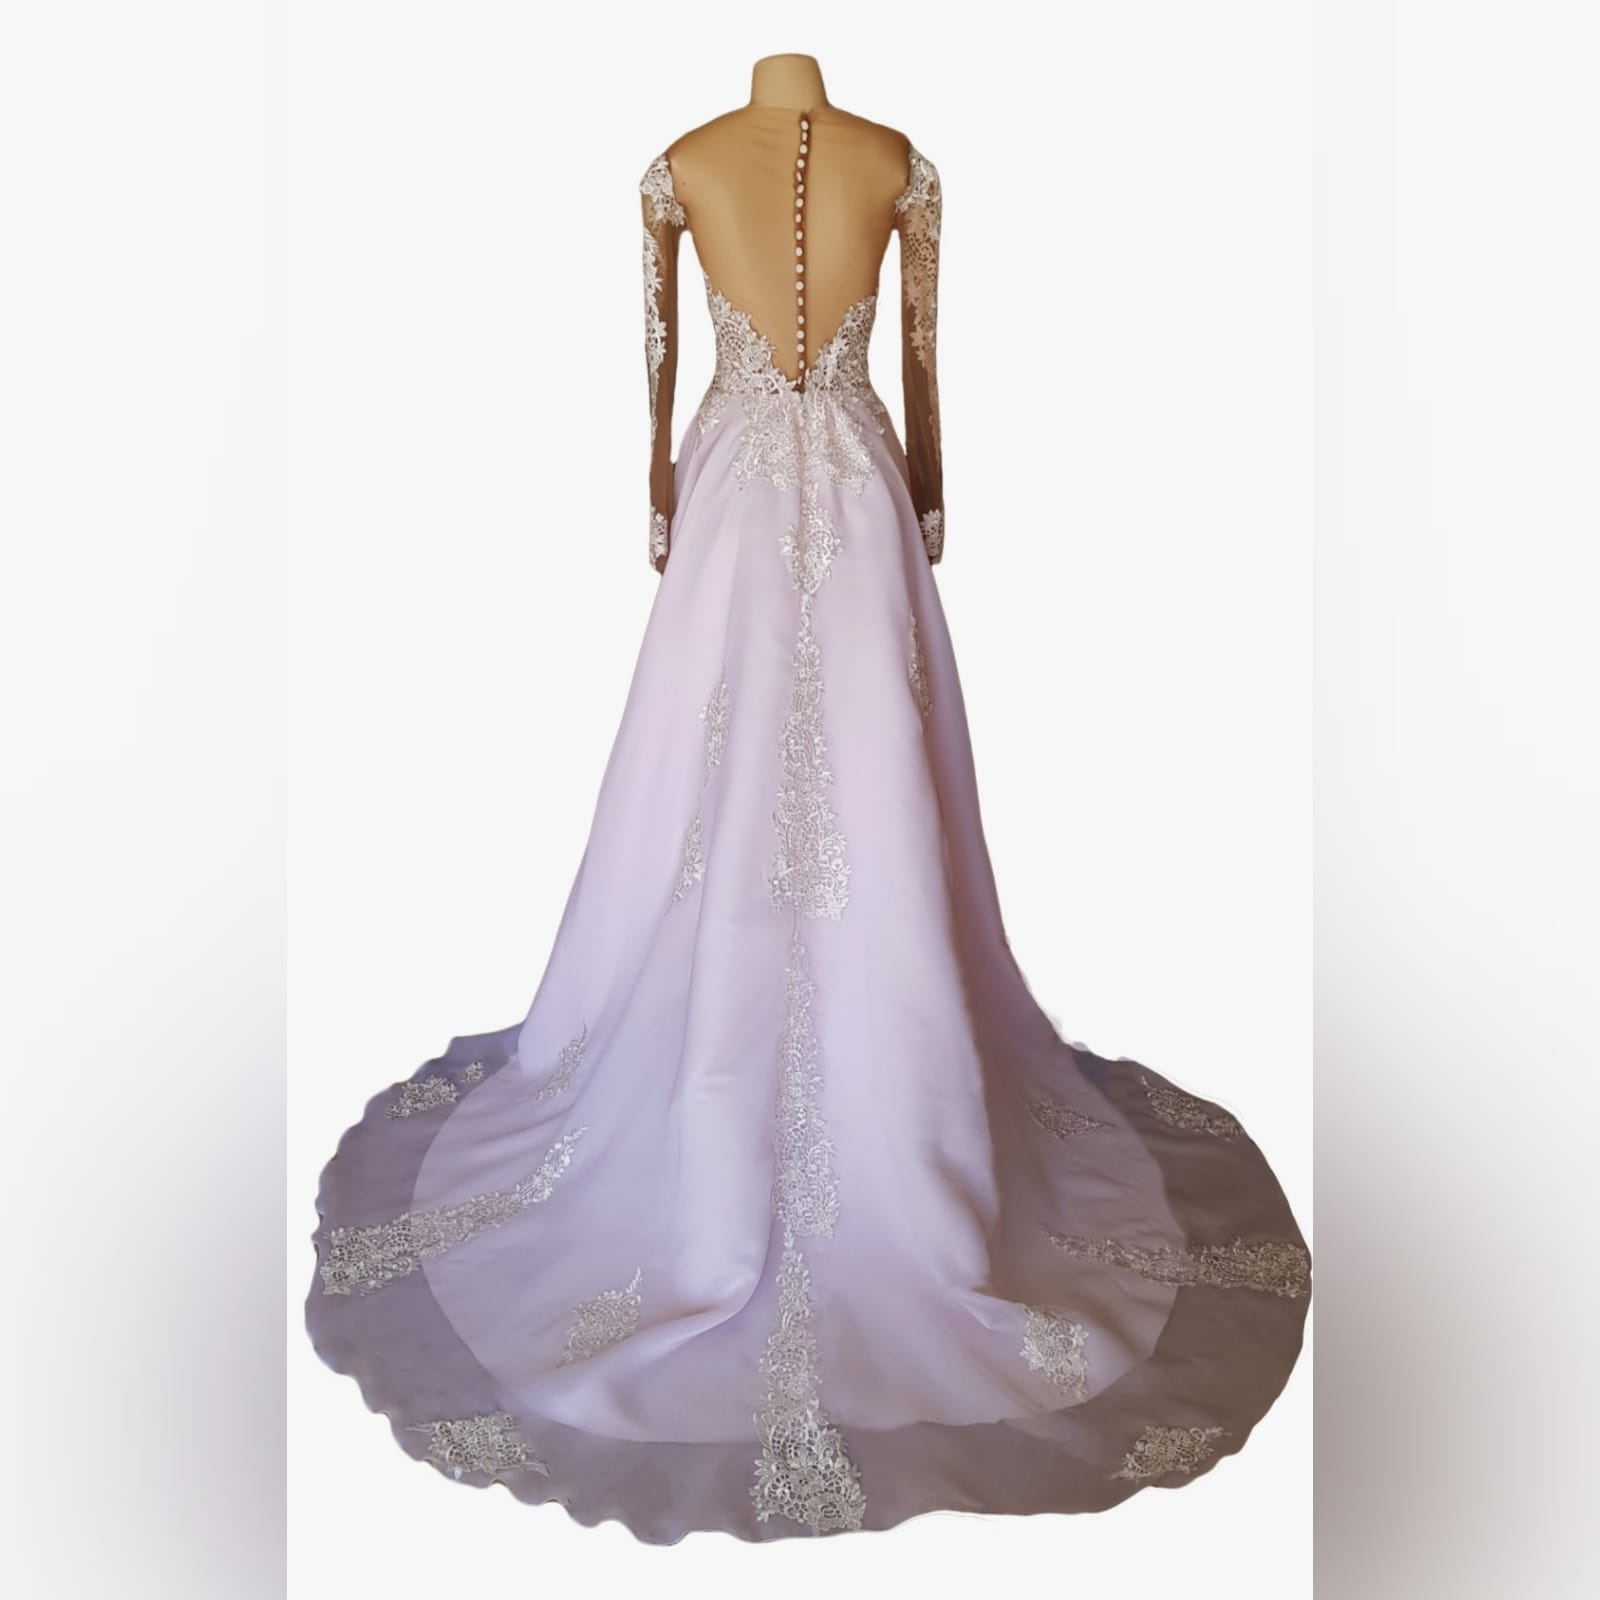 Pink and white organza lace prom dress 3 pink and white organza lace prom dress with an illusion off shoulder neckline, illusion lace long sleeves. An illusion backless design detailed with buttons. Lace on bodice and scattered throughout the dress with a train.